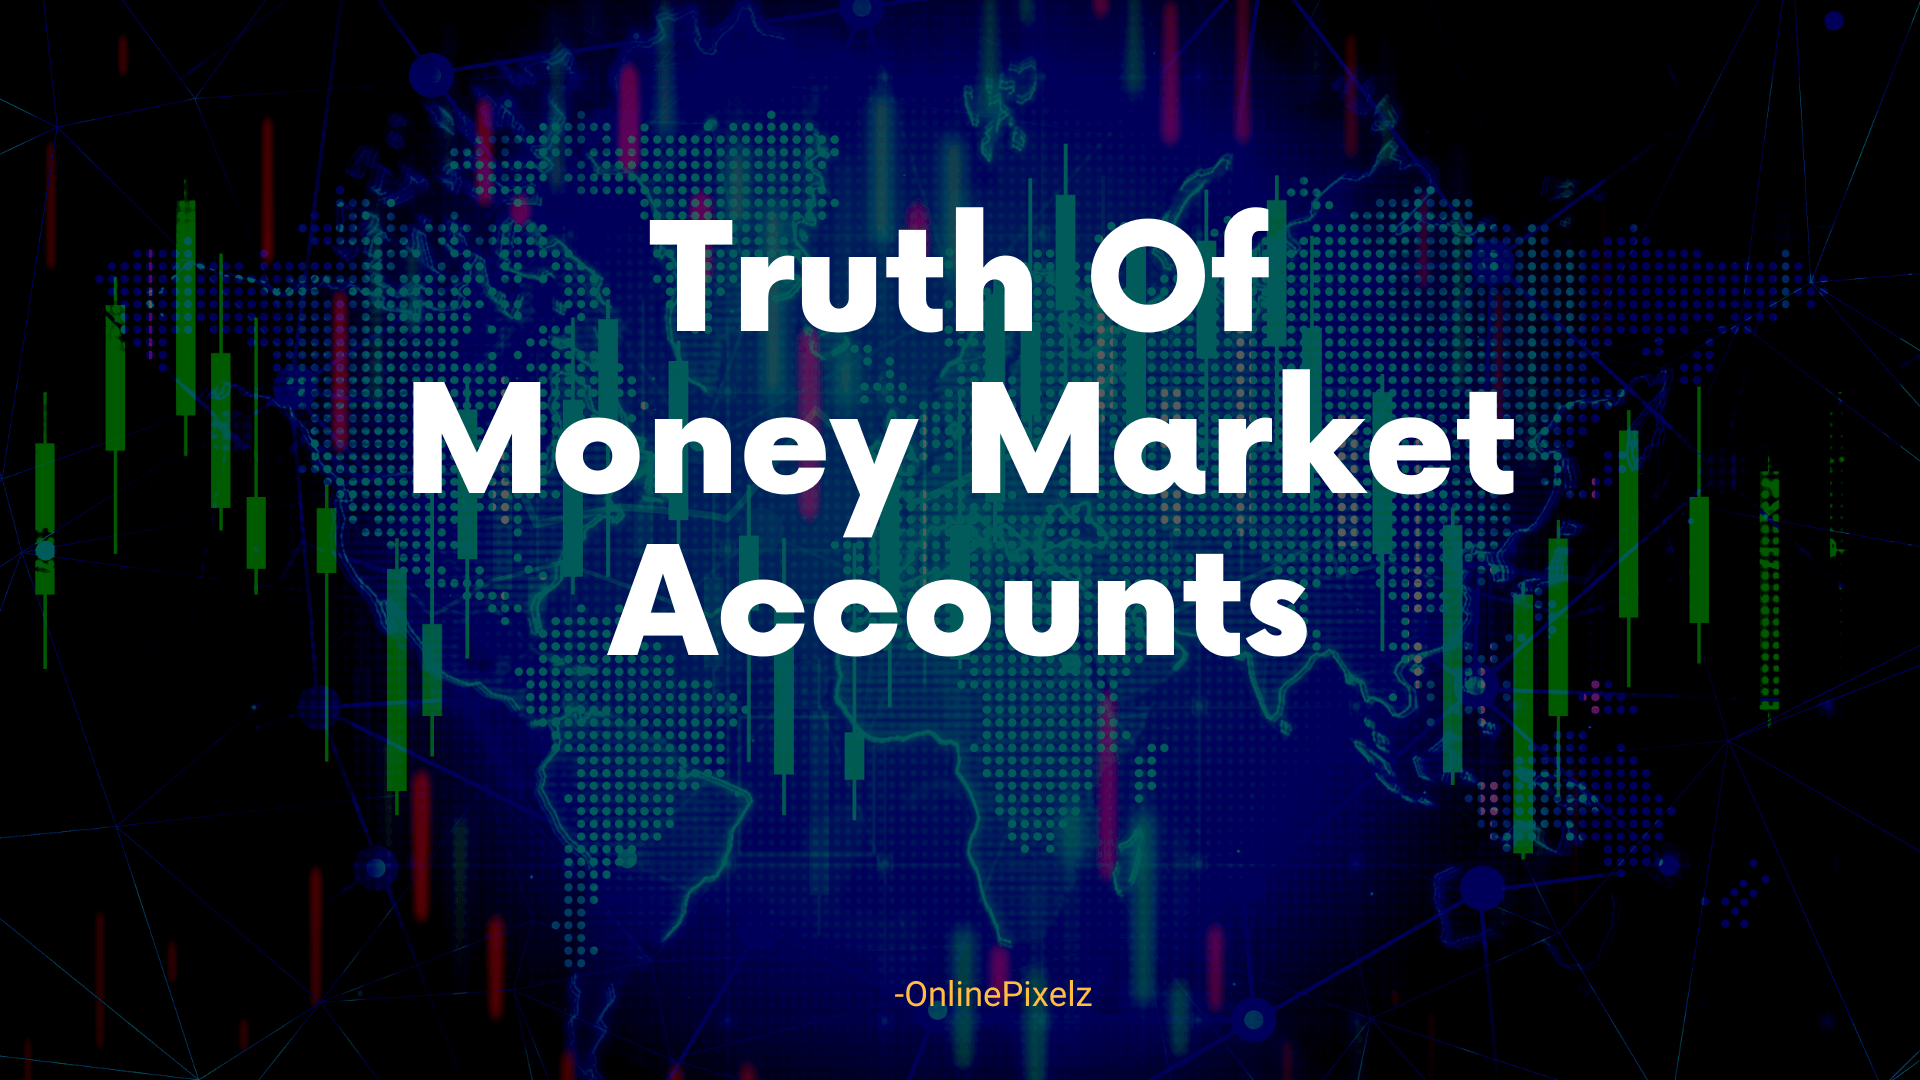 Which Statement About Money Market Accounts Is Not True